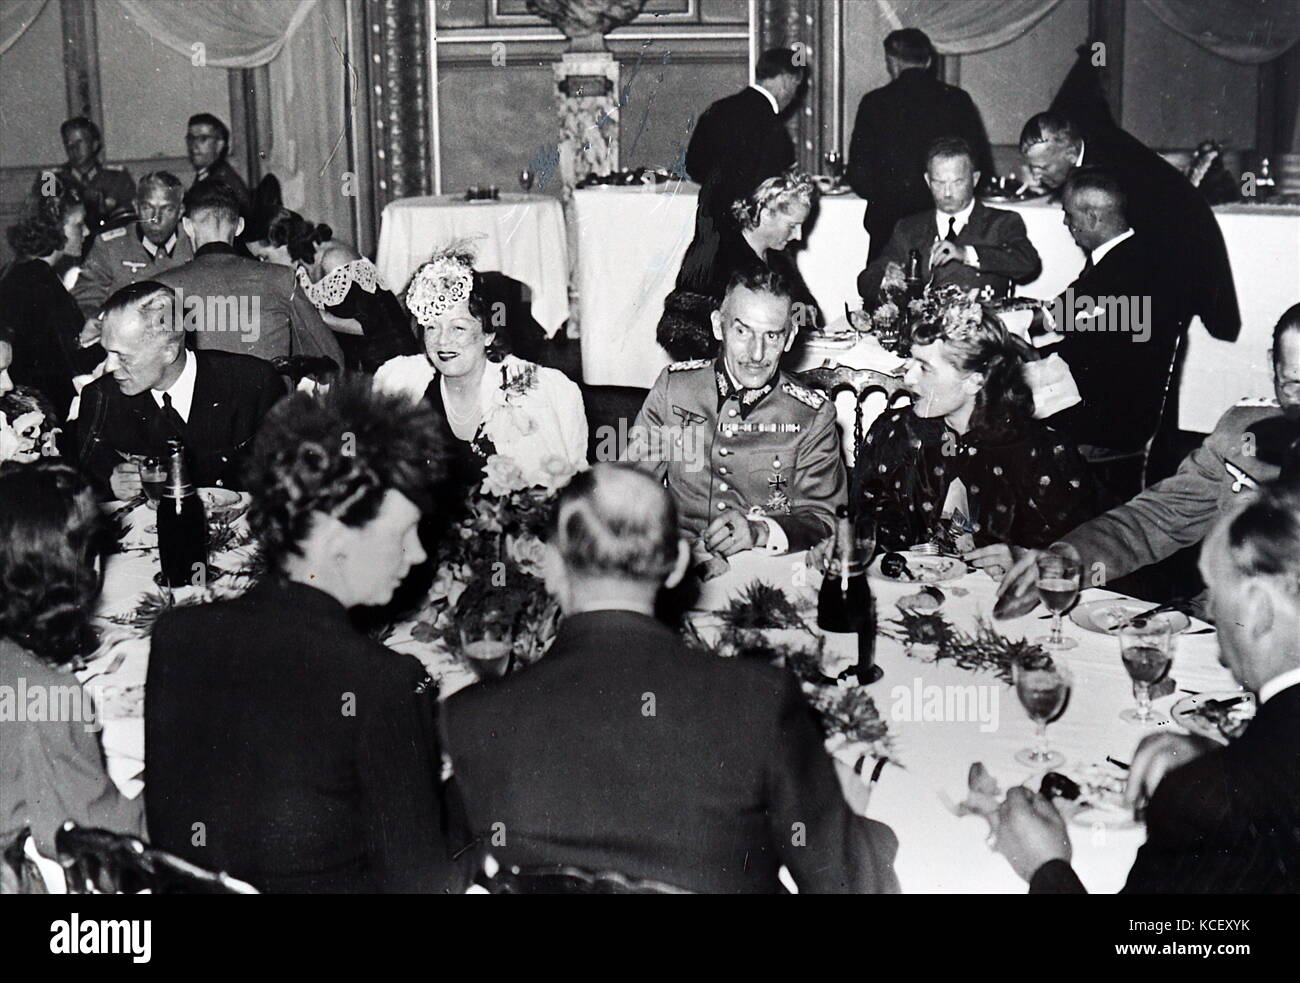 Photograph of Carl-Heinrich von Stülpnagel having dinner at the Paris Opera house. Carl-Heinrich von Stülpnagel - Stock Image